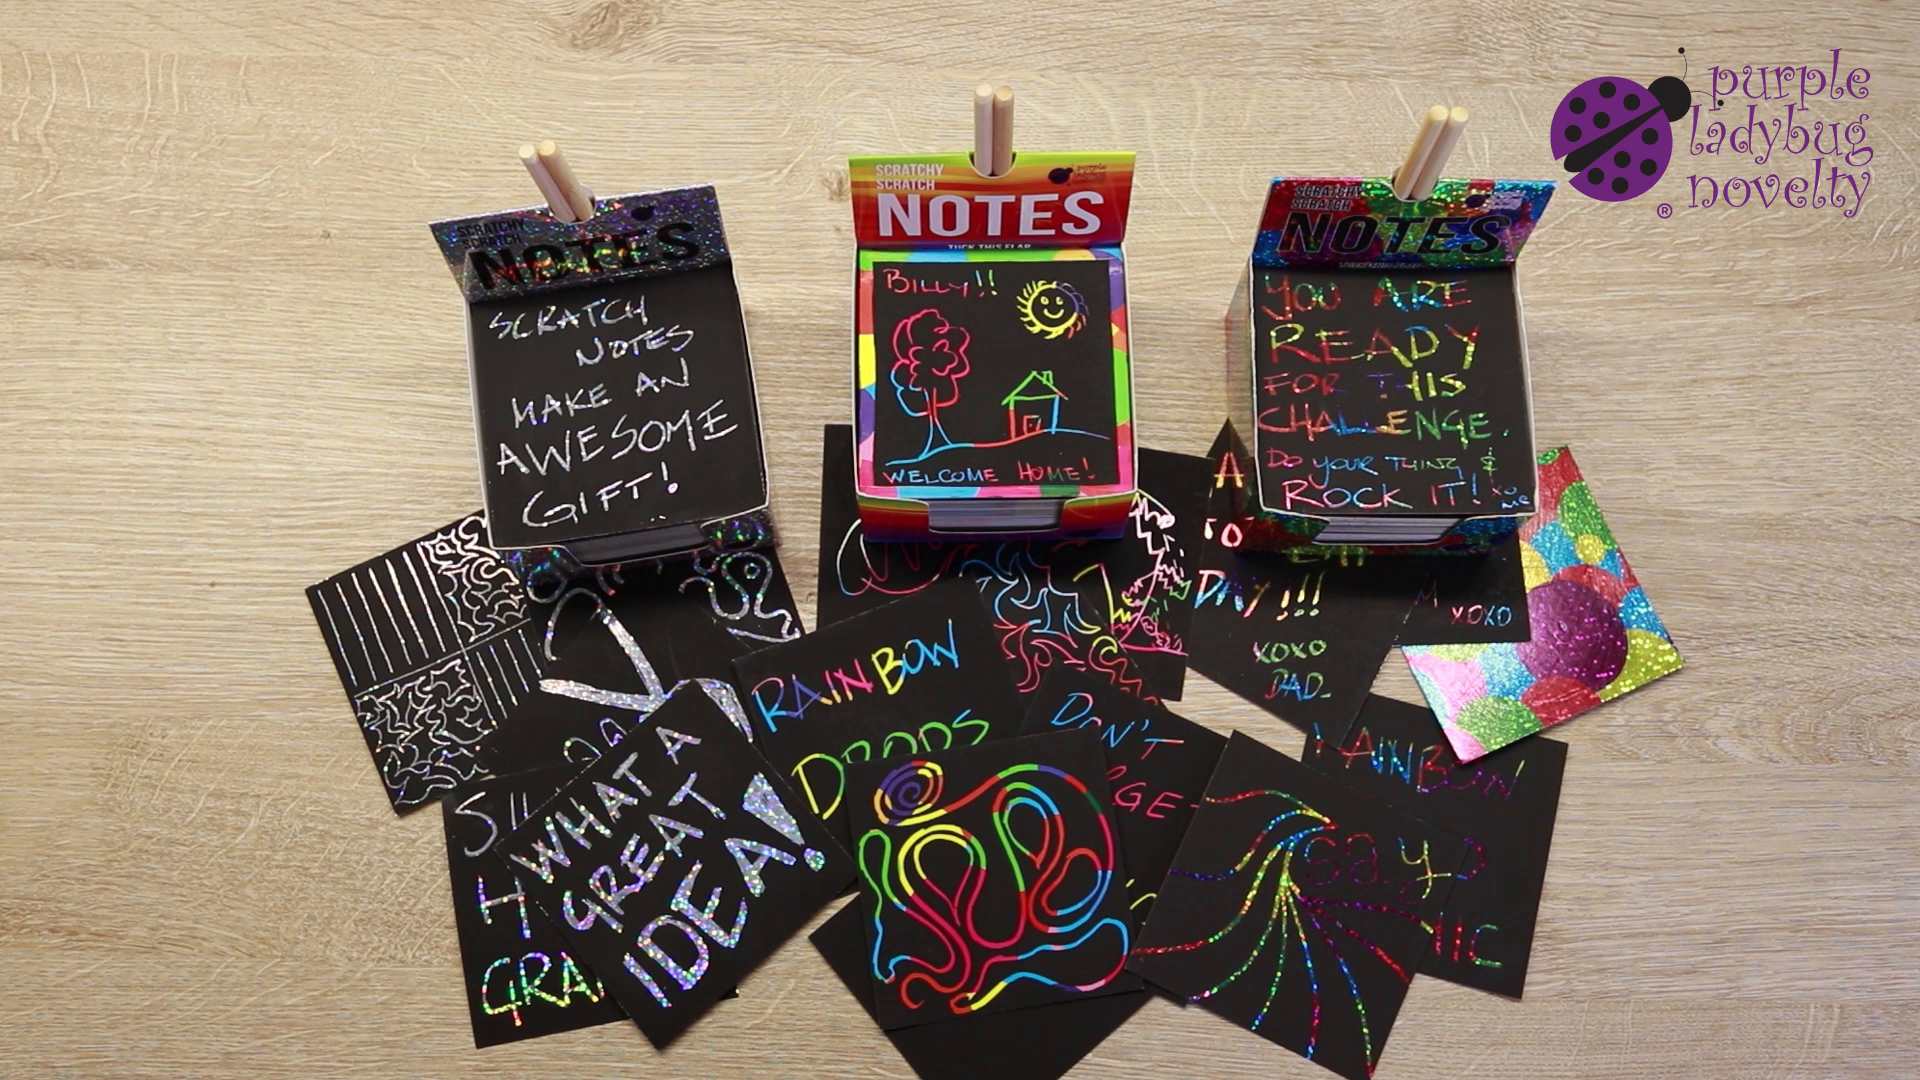 B1tuhD75A7S - Rainbow Scratch Off Mini Notes + 2 Stylus Pens Kit: 150 Sheets of Rainbow Scratch Paper for Kids Arts and Crafts, Airplane or Car Travel Toys - Cute Unique Gift Idea for Kids, Girls, Women, or Anyone!